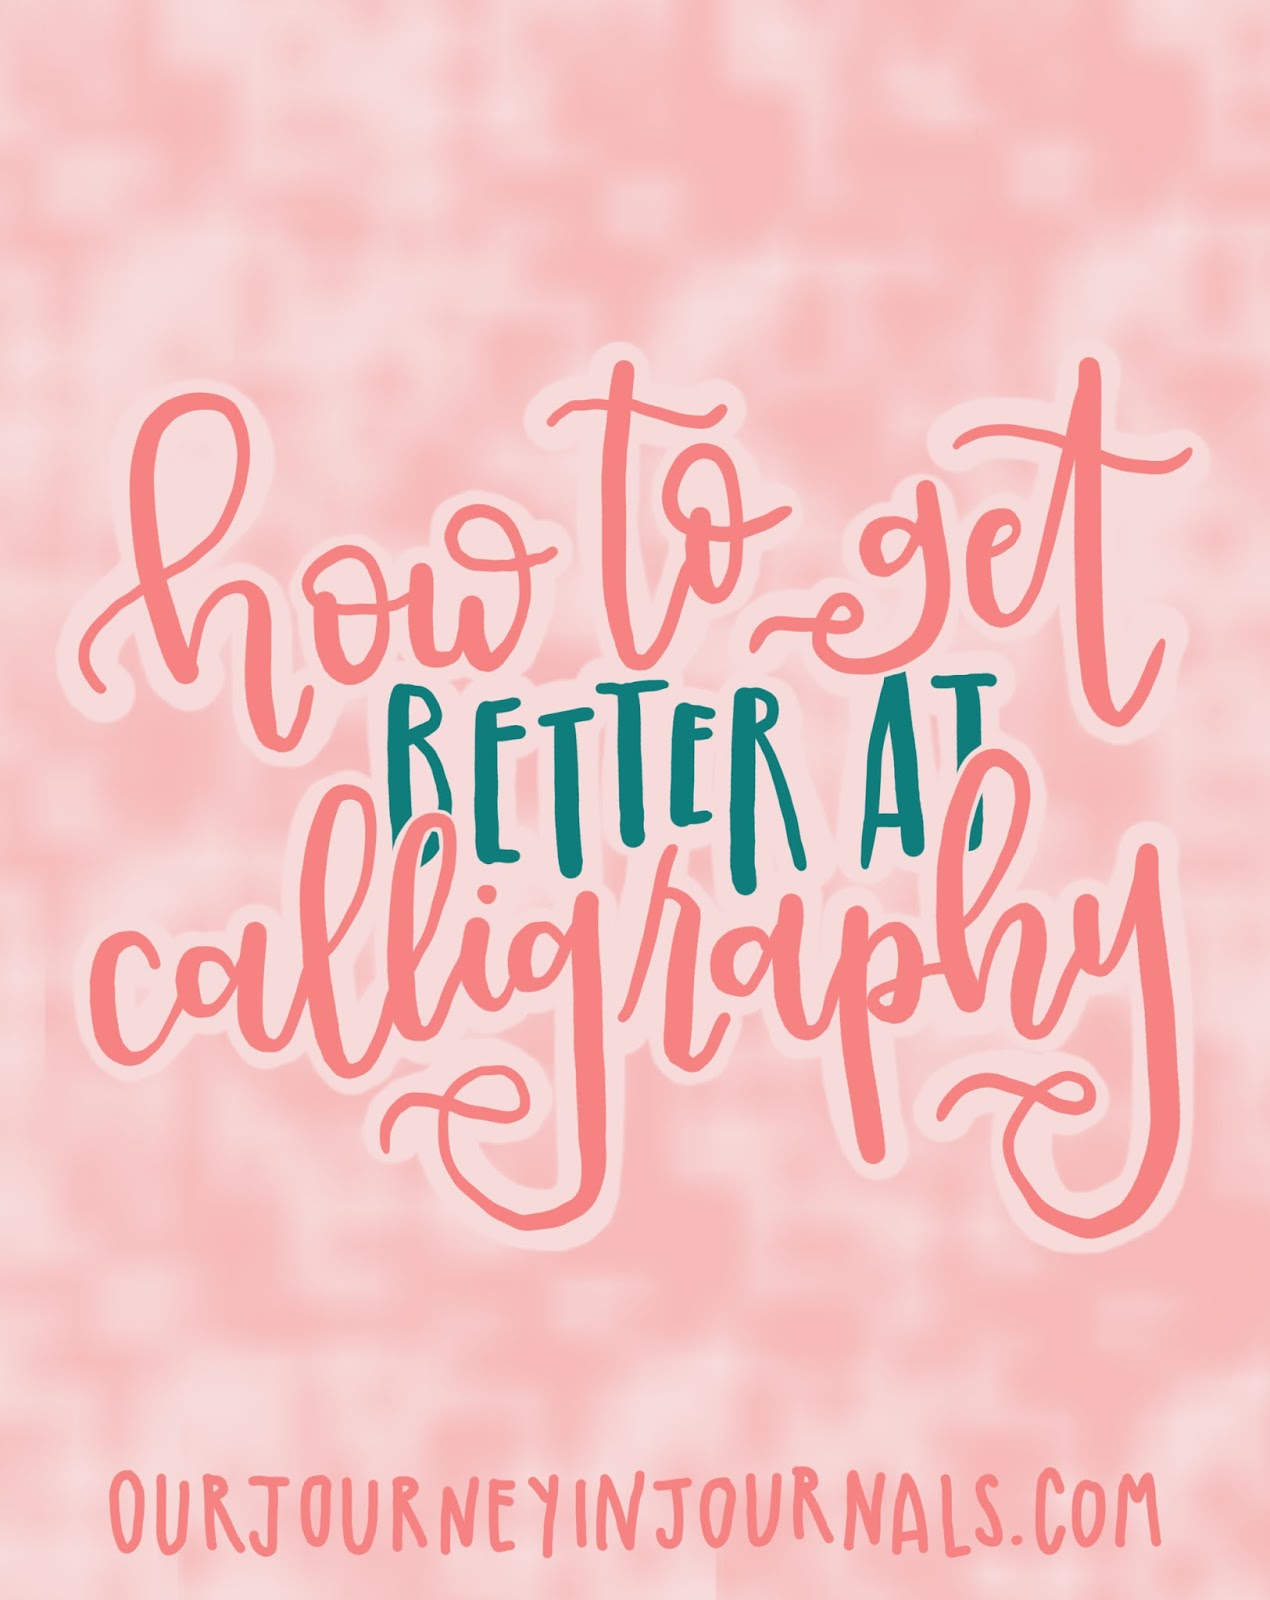 How to Get Better at Calligraphy